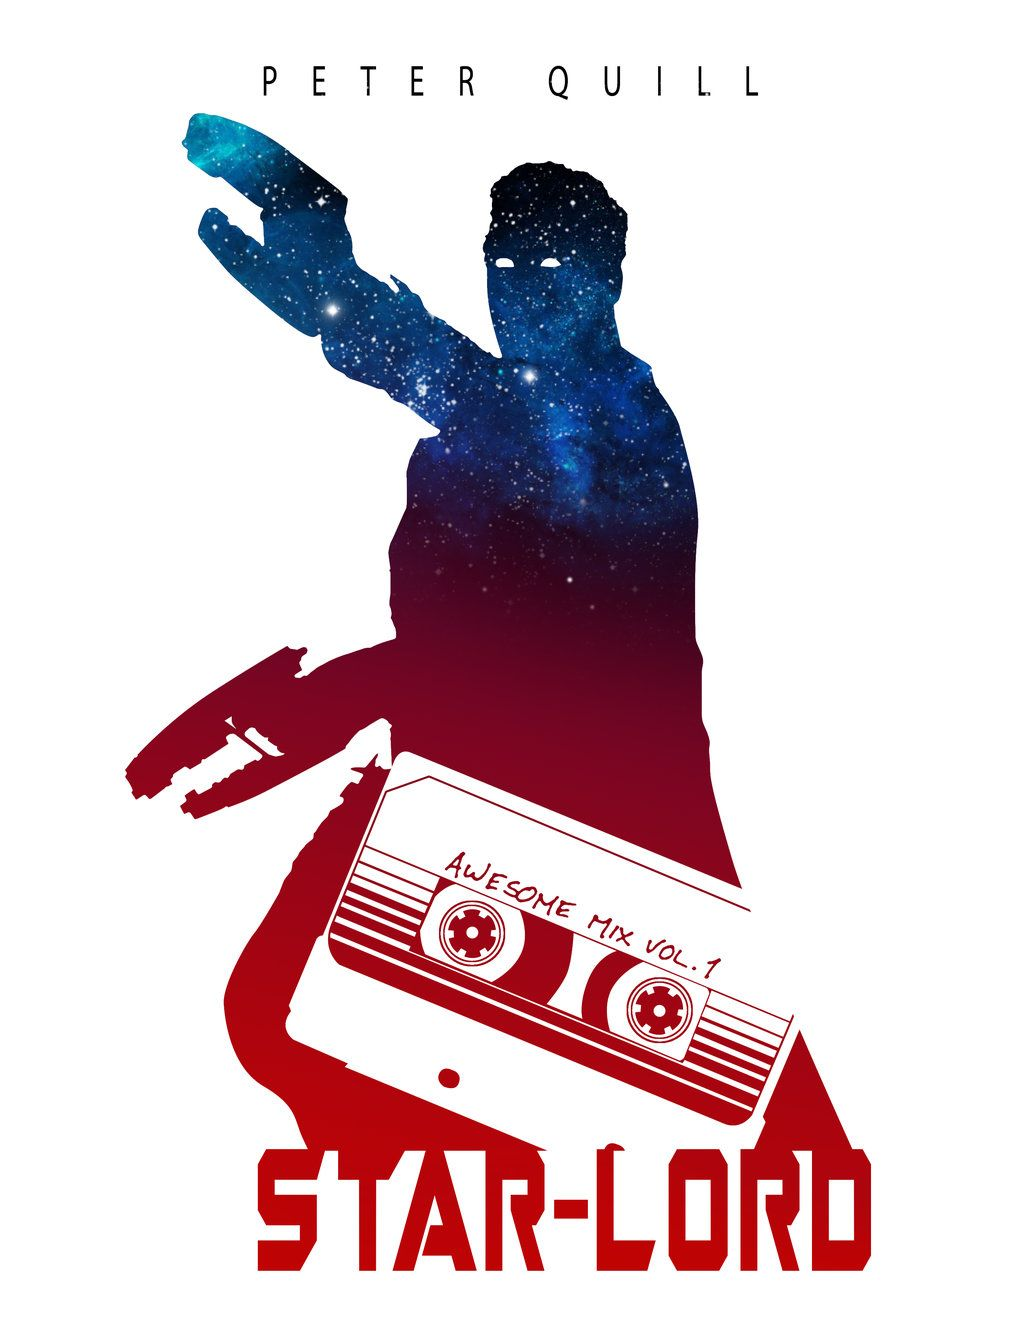 Guardians of the Galaxy Simply Marvel Star lord Guardians of